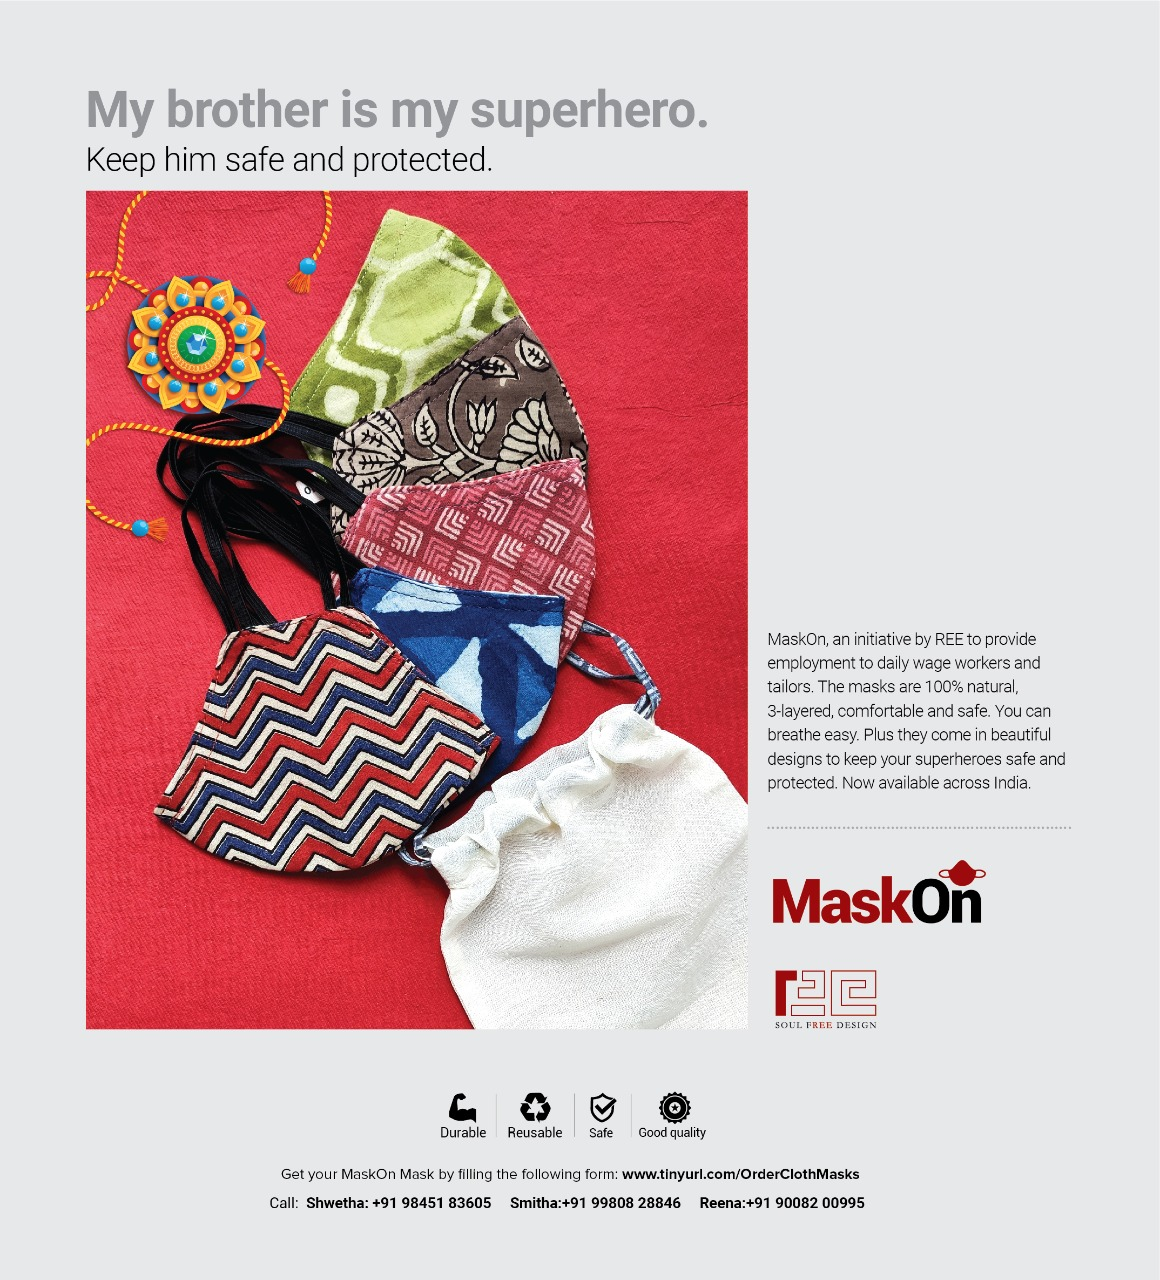 This #RakshaBandhan, protect your sibling with the perfect gift - complete with a gift bag.